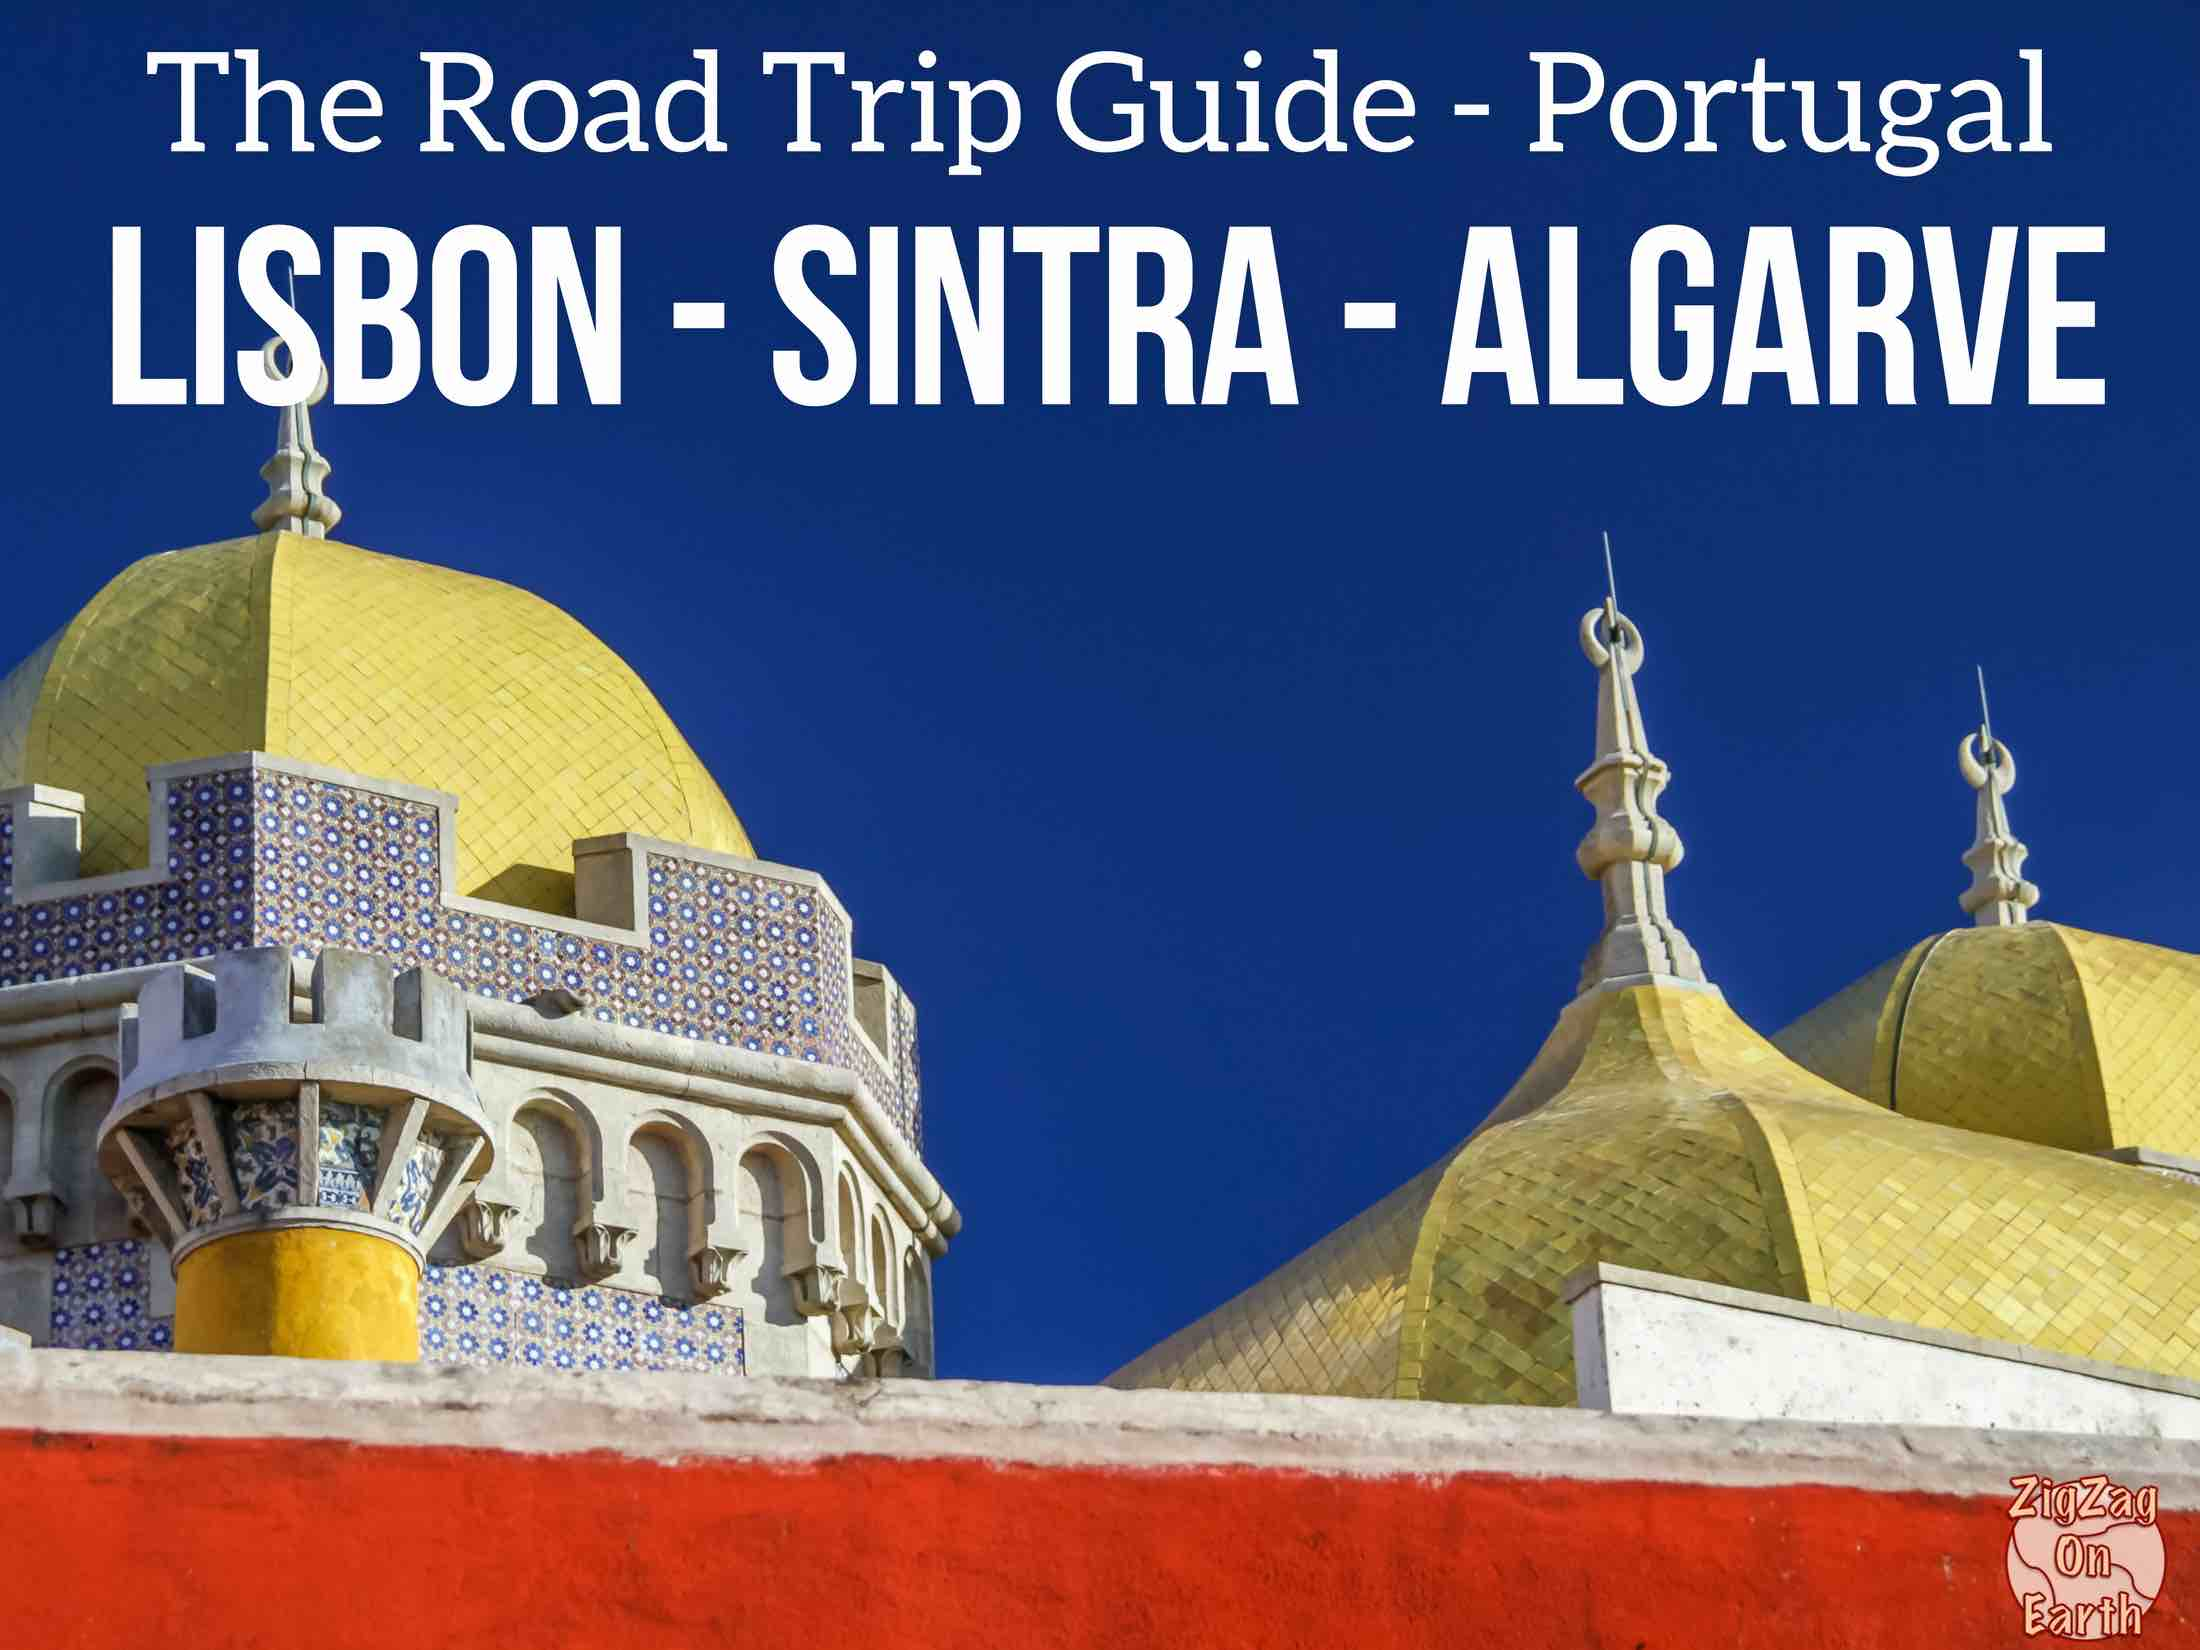 Lisbonne Sintra Algarve Travel Guide